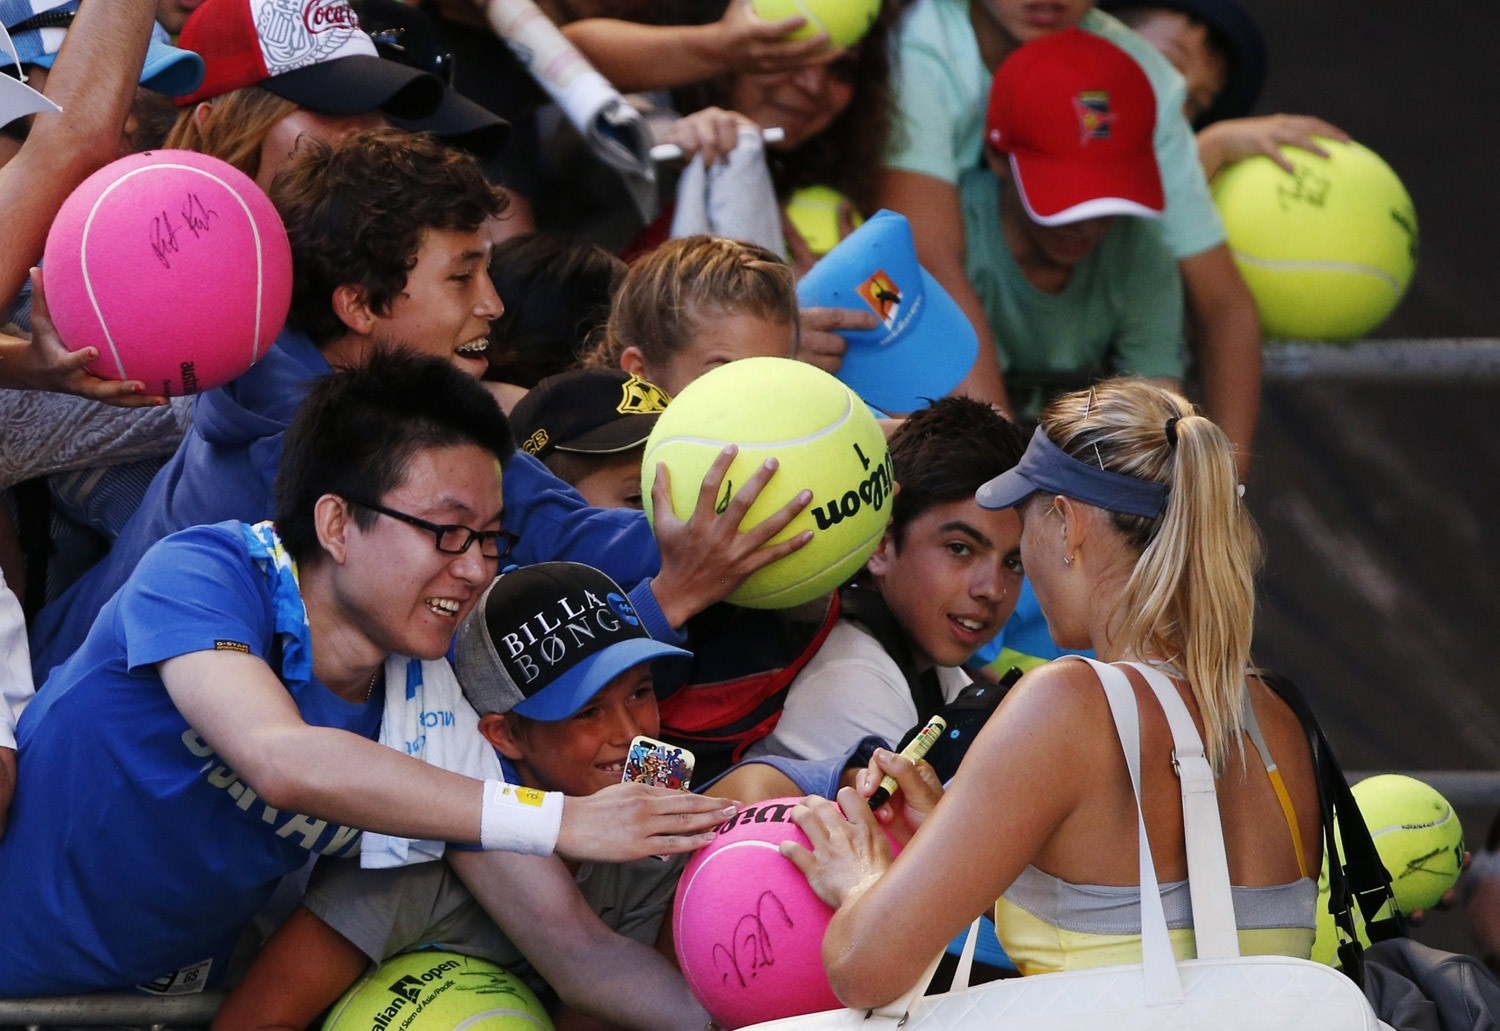 Maria Sharapova of Russia signs autographs for fans after her women's singles match against Misaki Doi of Japan at the Australian Open tennis tournament in Melbourne (Reuters)